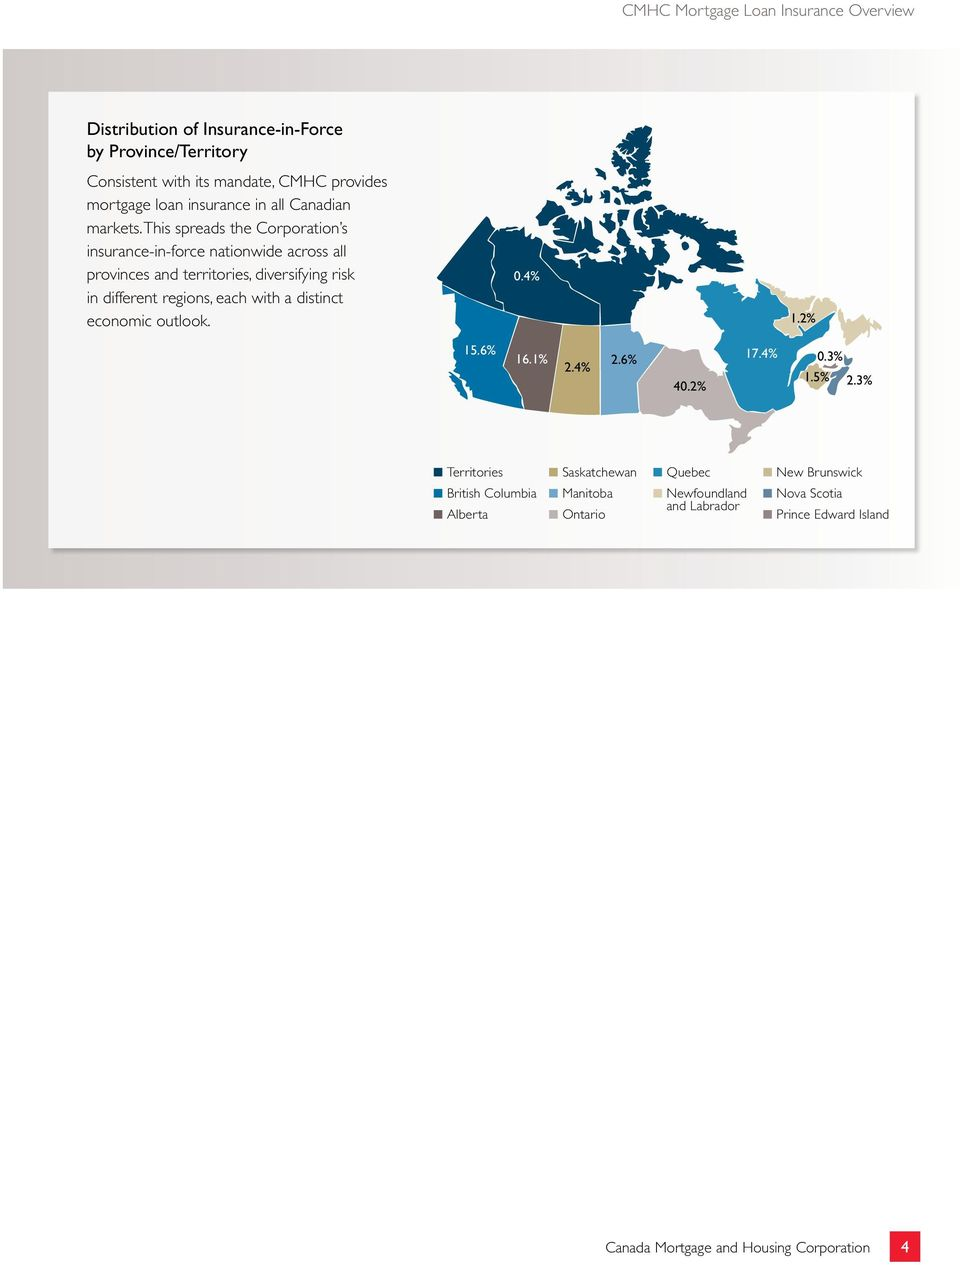 This spreads the Corporation s insurance-in-force nationwide across all provinces and territories, diversifying risk in different regions, each with a